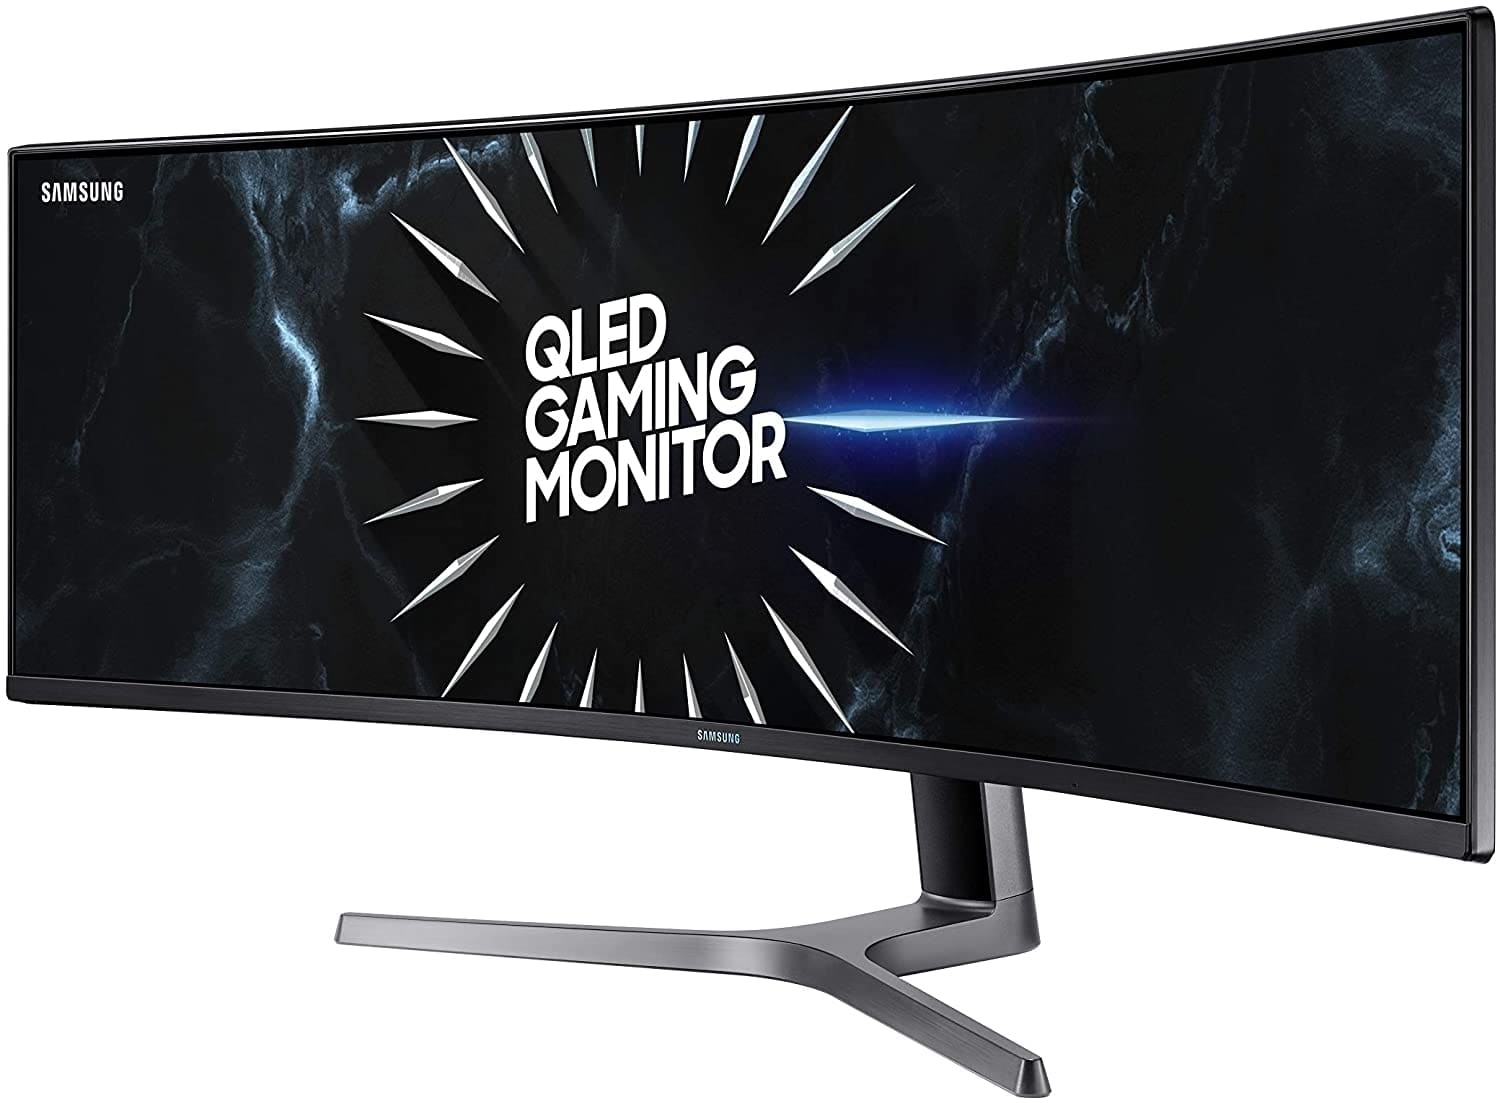 Samsung Ultrawide Monitor on Sale CRG90 $899 with EPP